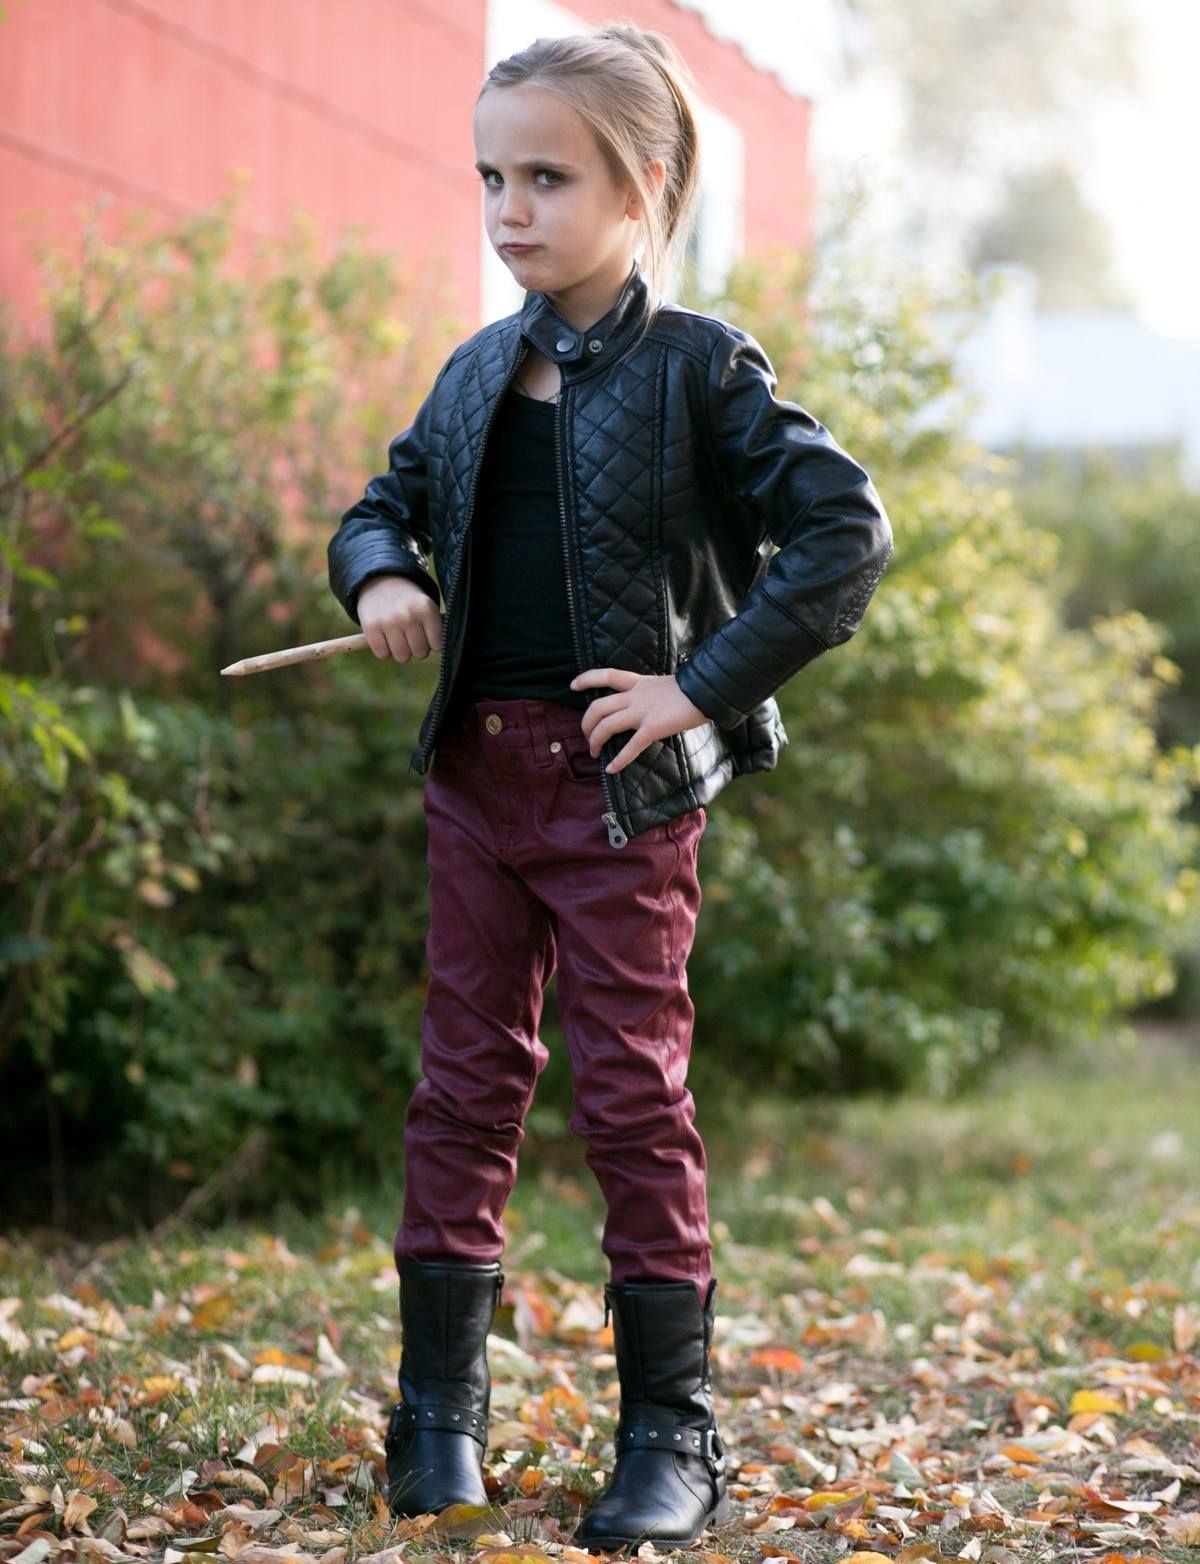 buffy the vampire slayer halloween costume | kinder surprise